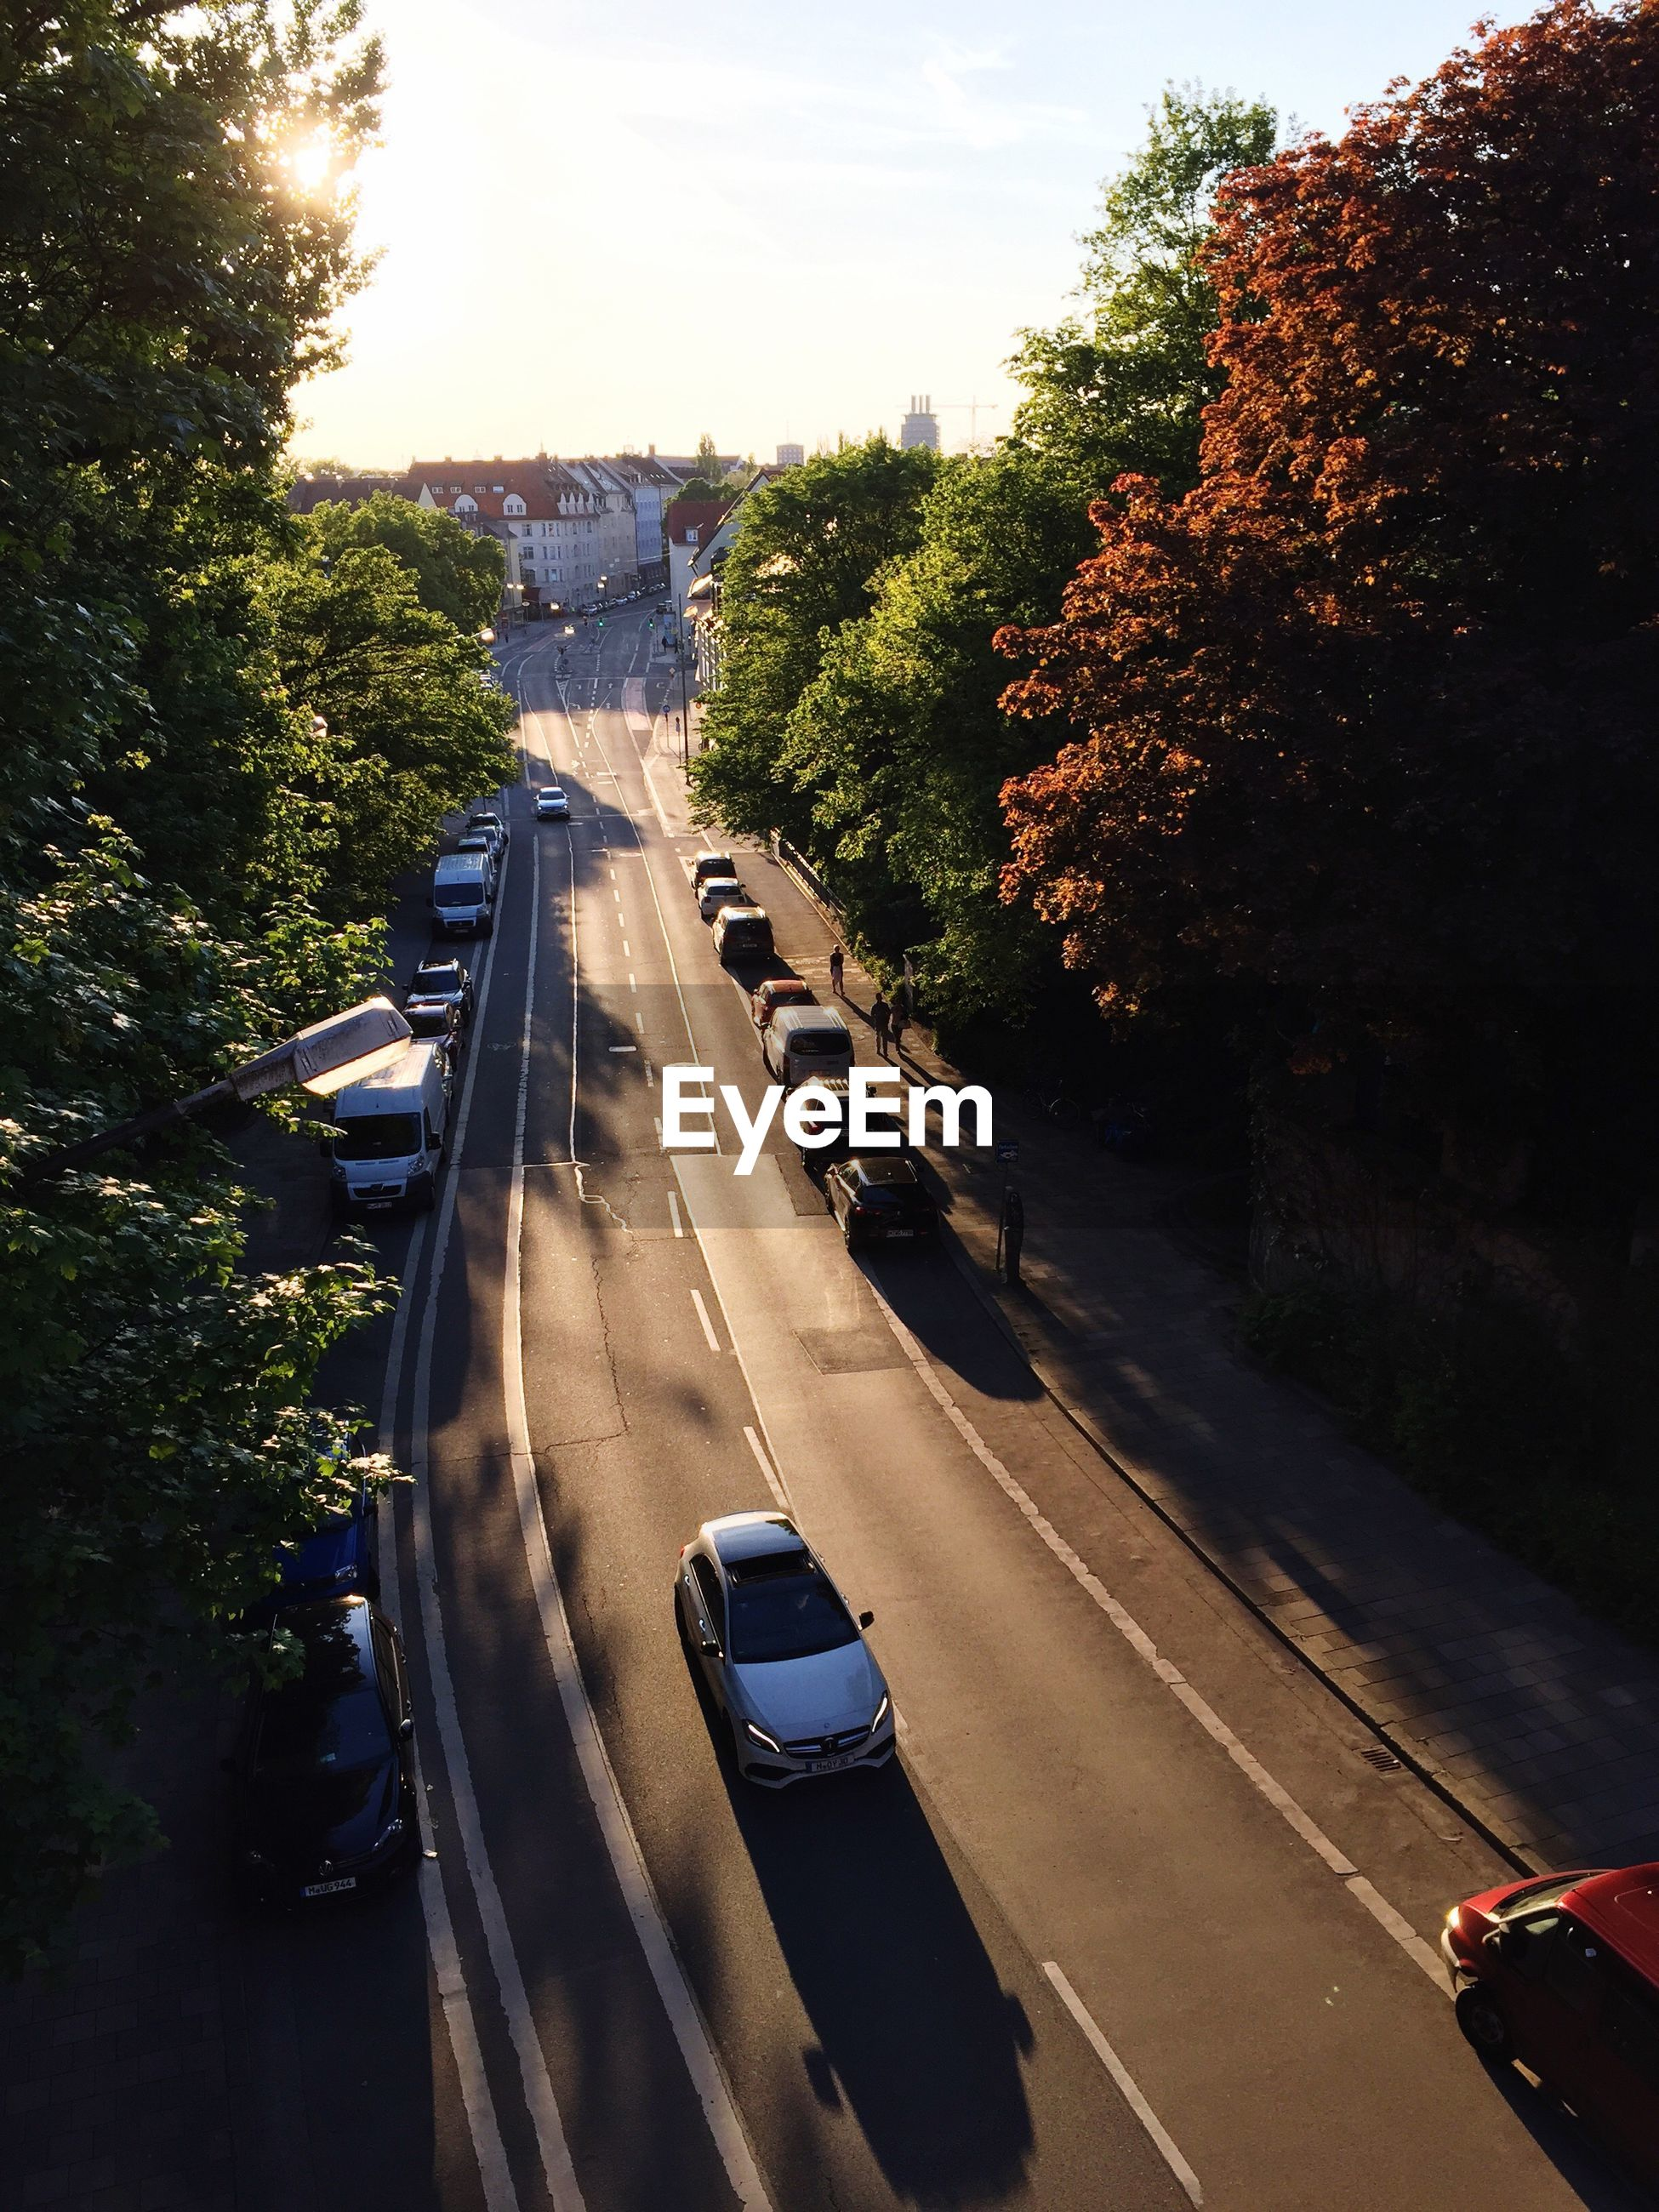 High angle view of cars moving on road amidst trees in city